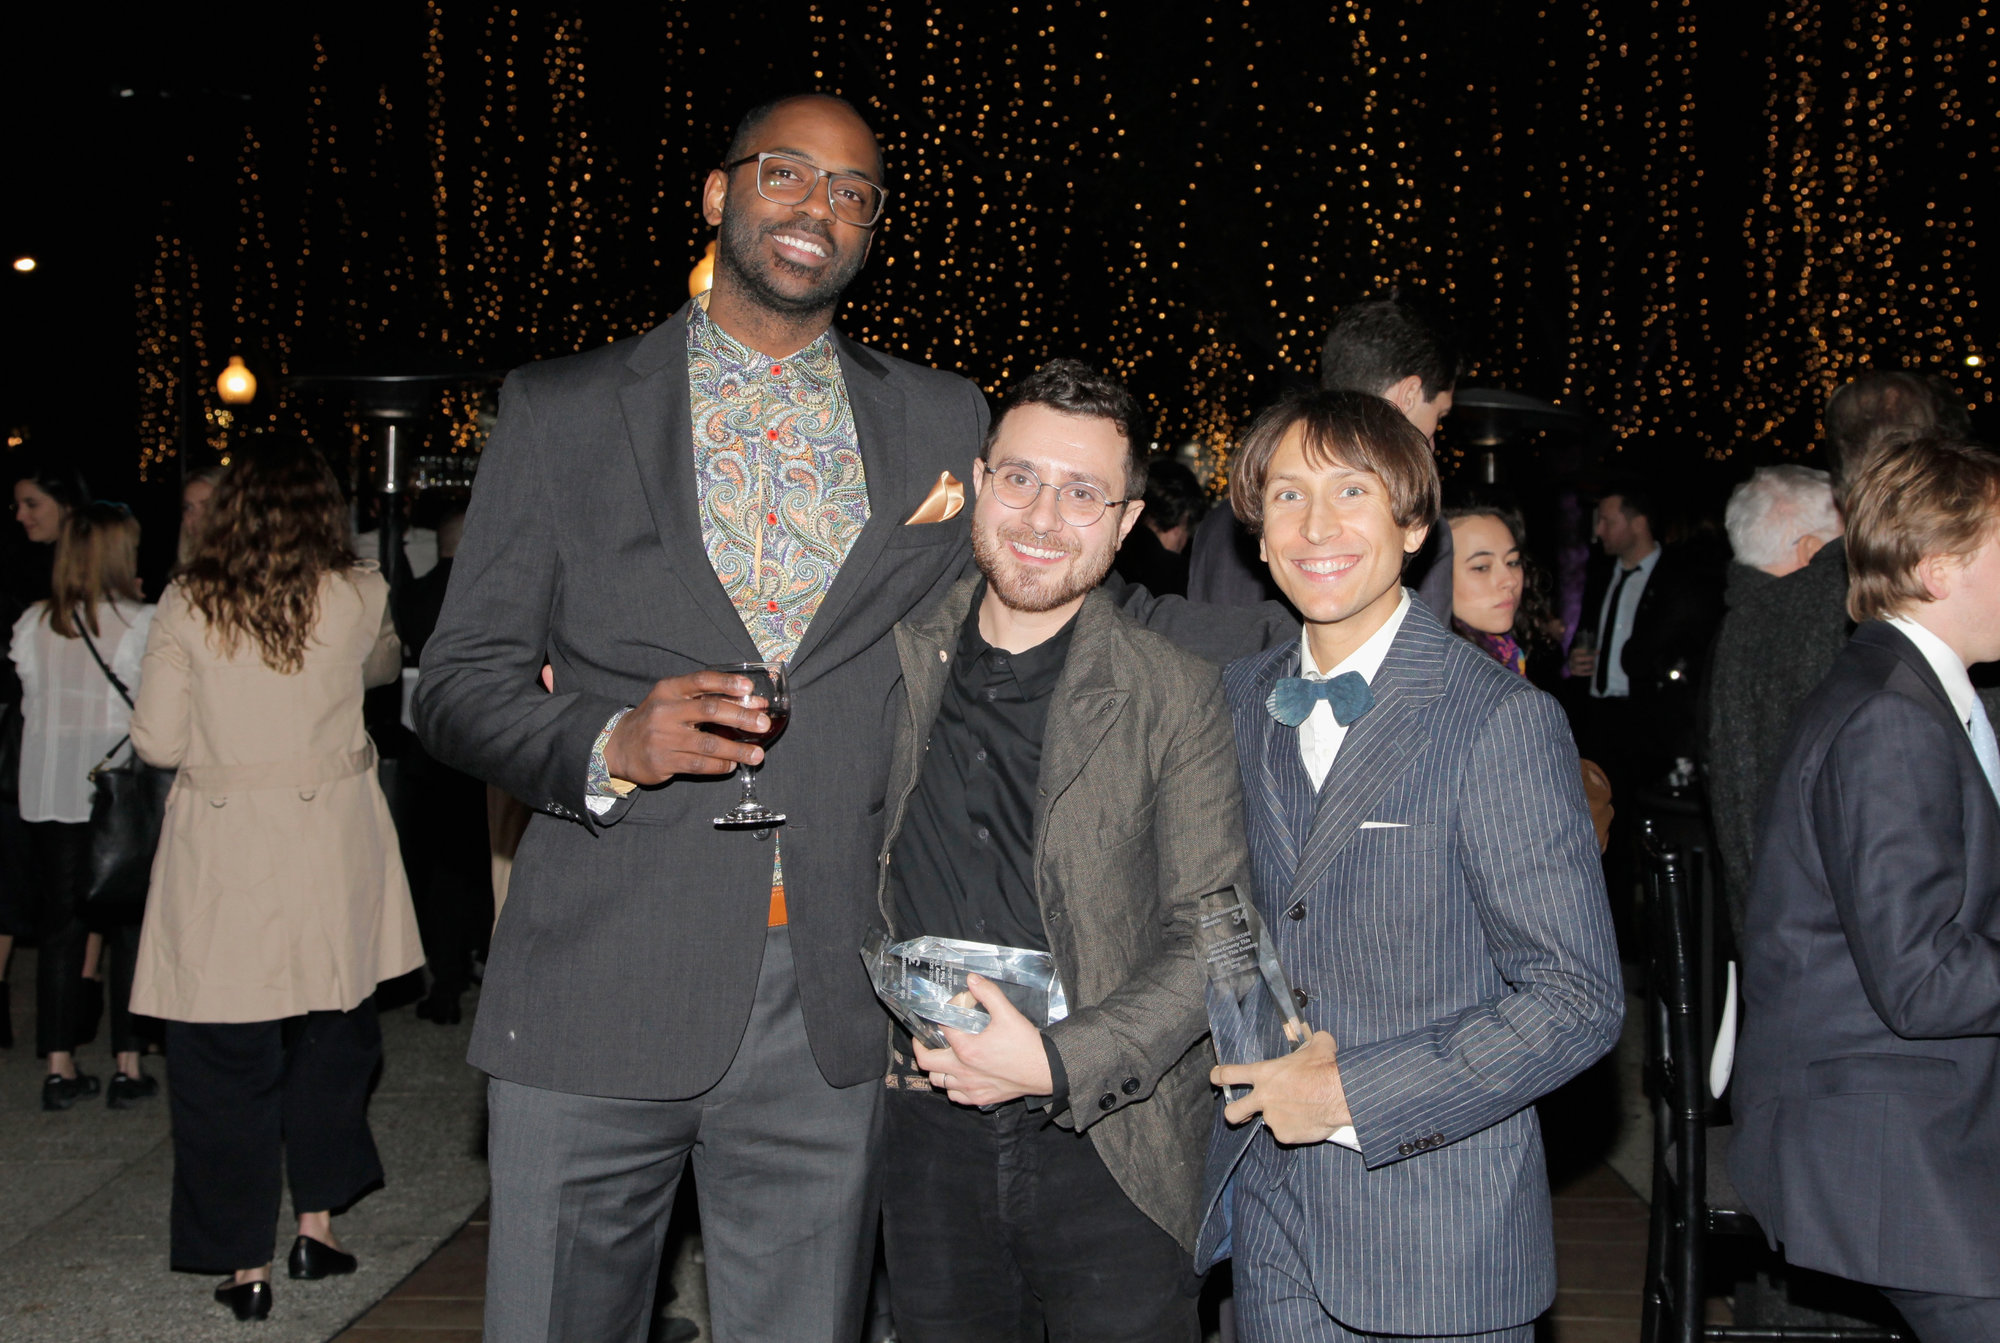 Left to right: Composers Alex Somers and Scott Alario and RaMell Ross at the IDA Documentary Awards. Photo by Tibrina Hobson.